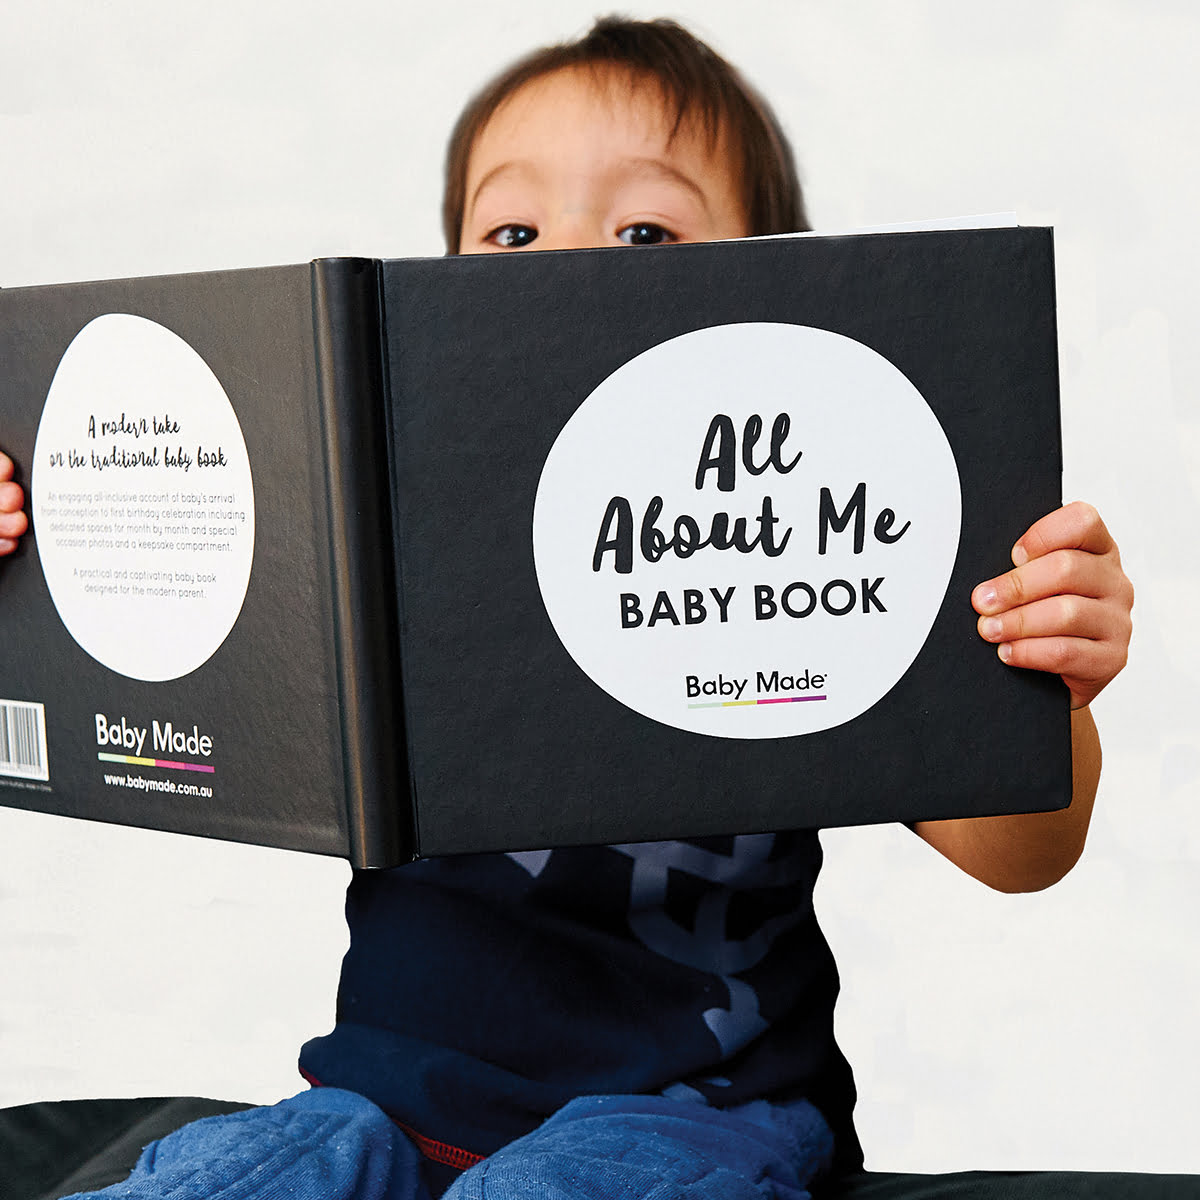 All about me baby book baby made baby book solutioingenieria Images